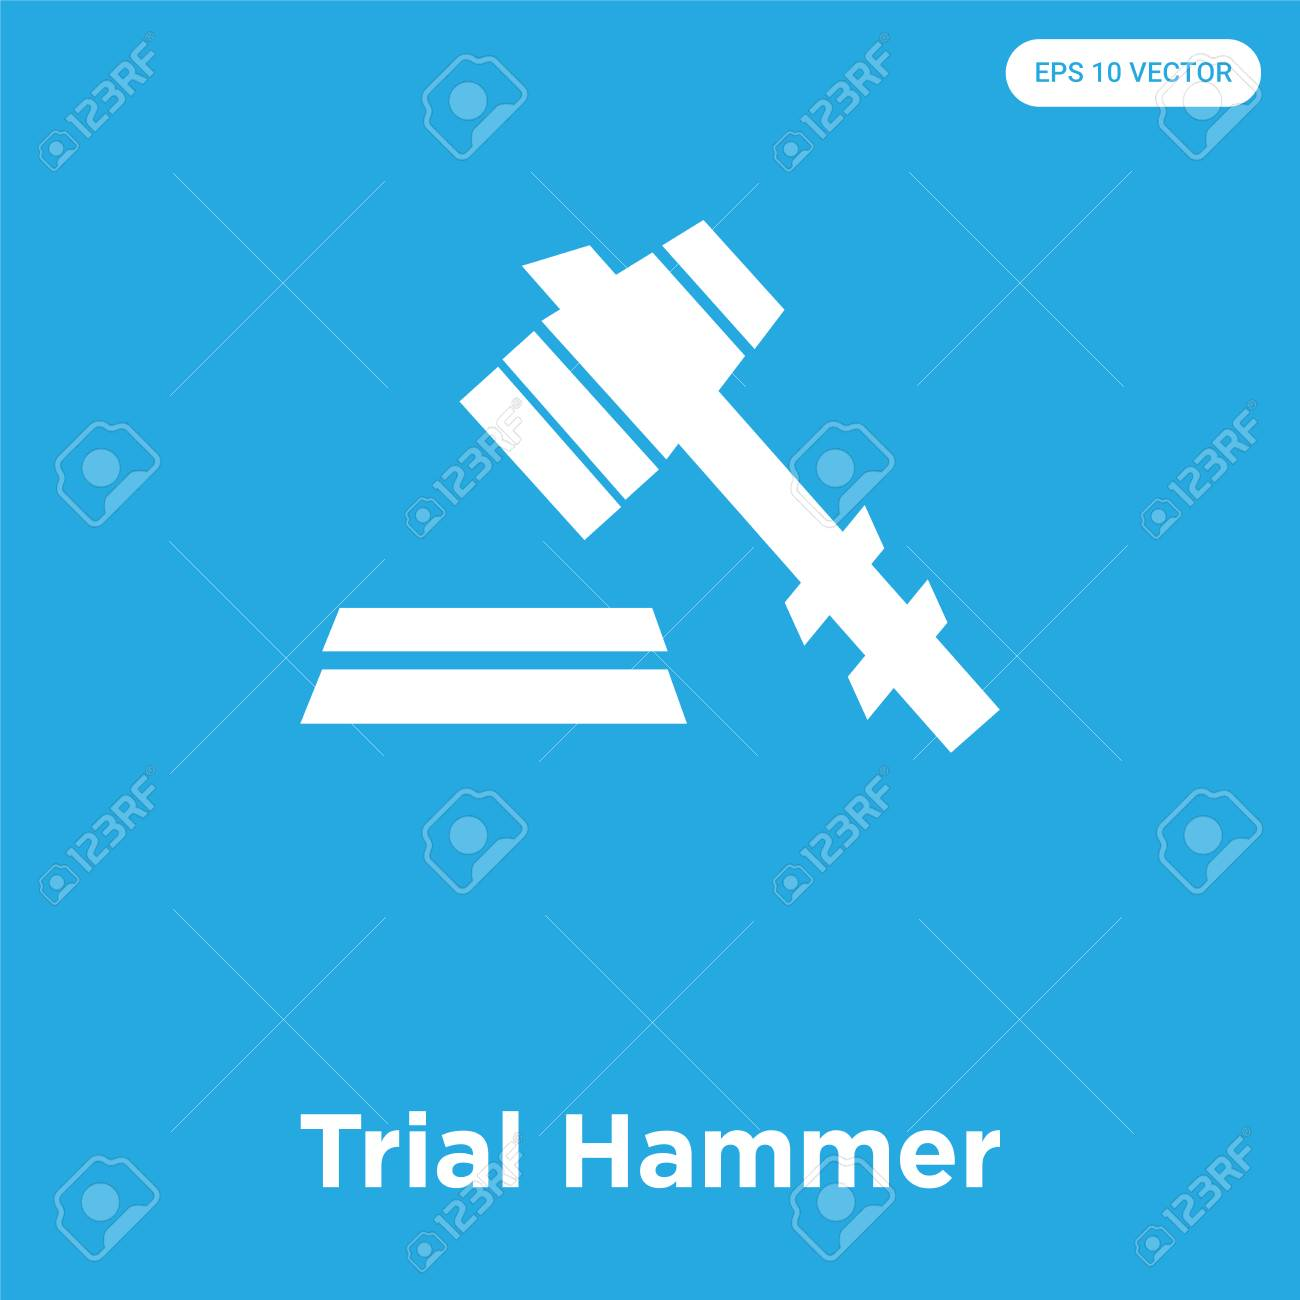 Trial Hammer vector icon isolated on blue background, sign and symbol, Trial Hammer icons collection - 114806120